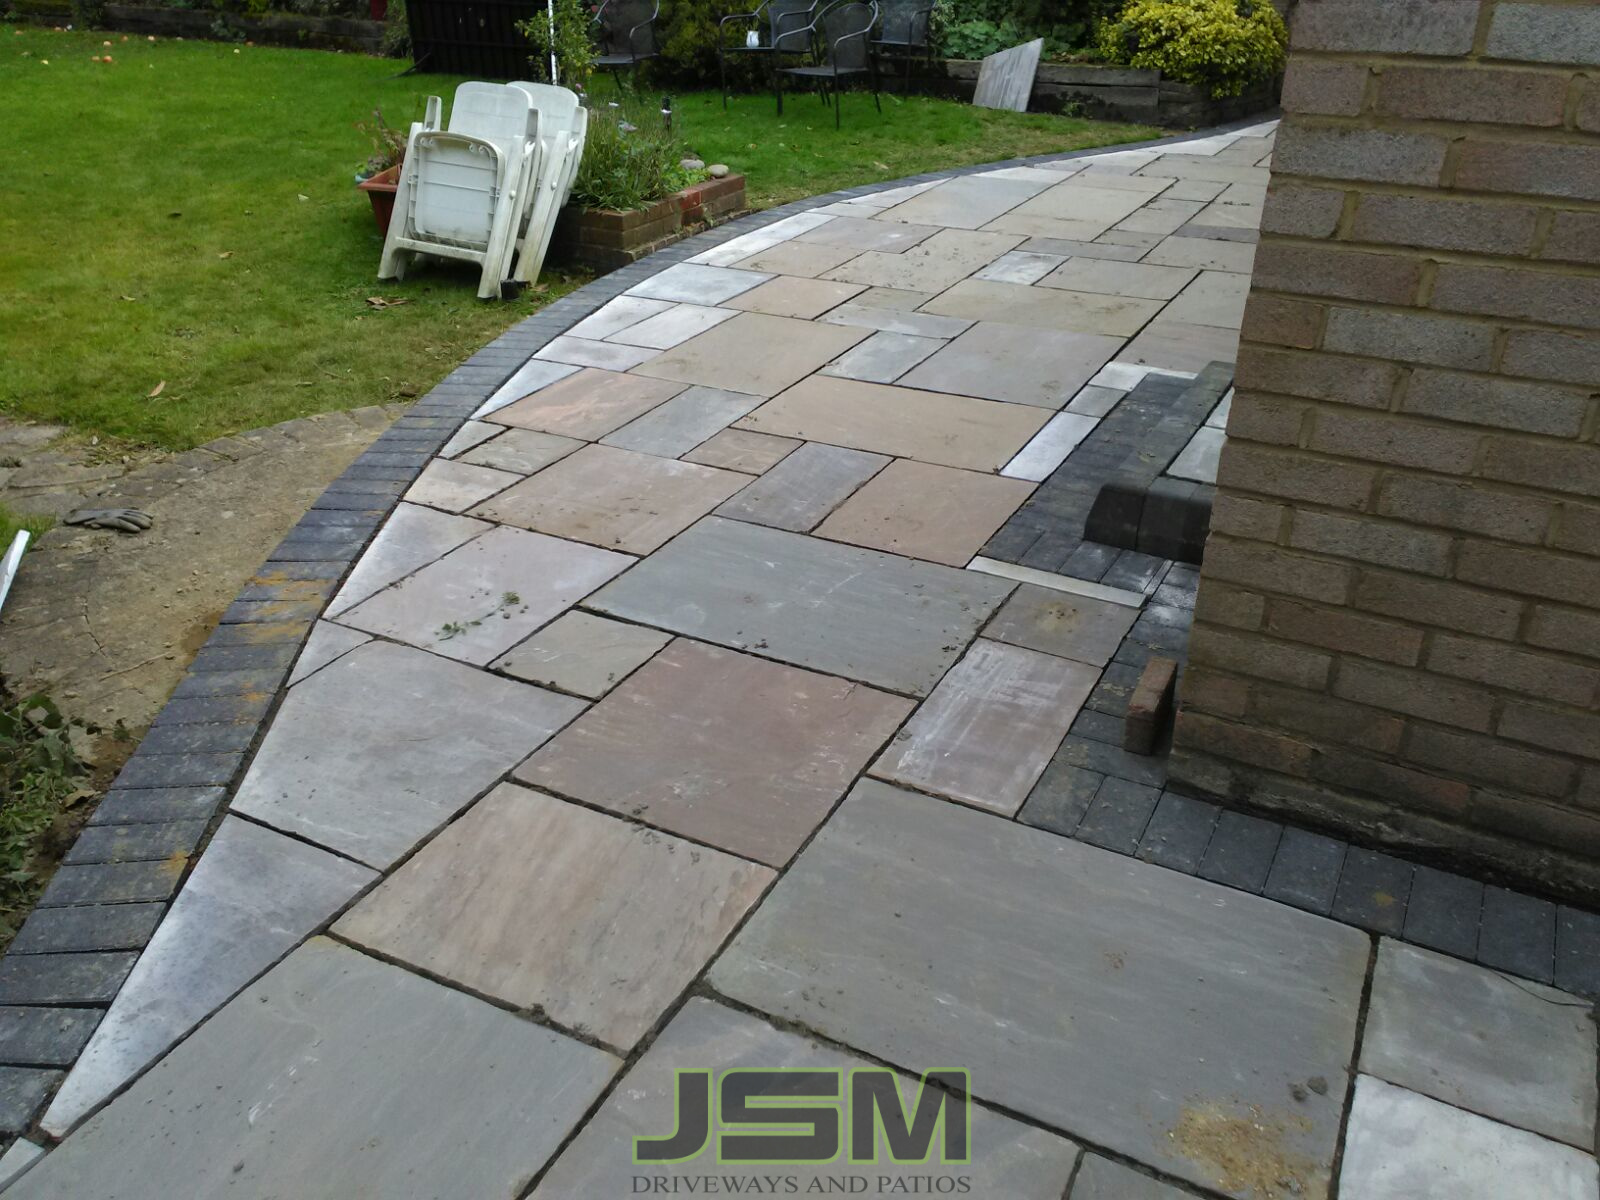 Patio Paving Company in Filgrave, Milton Keynes